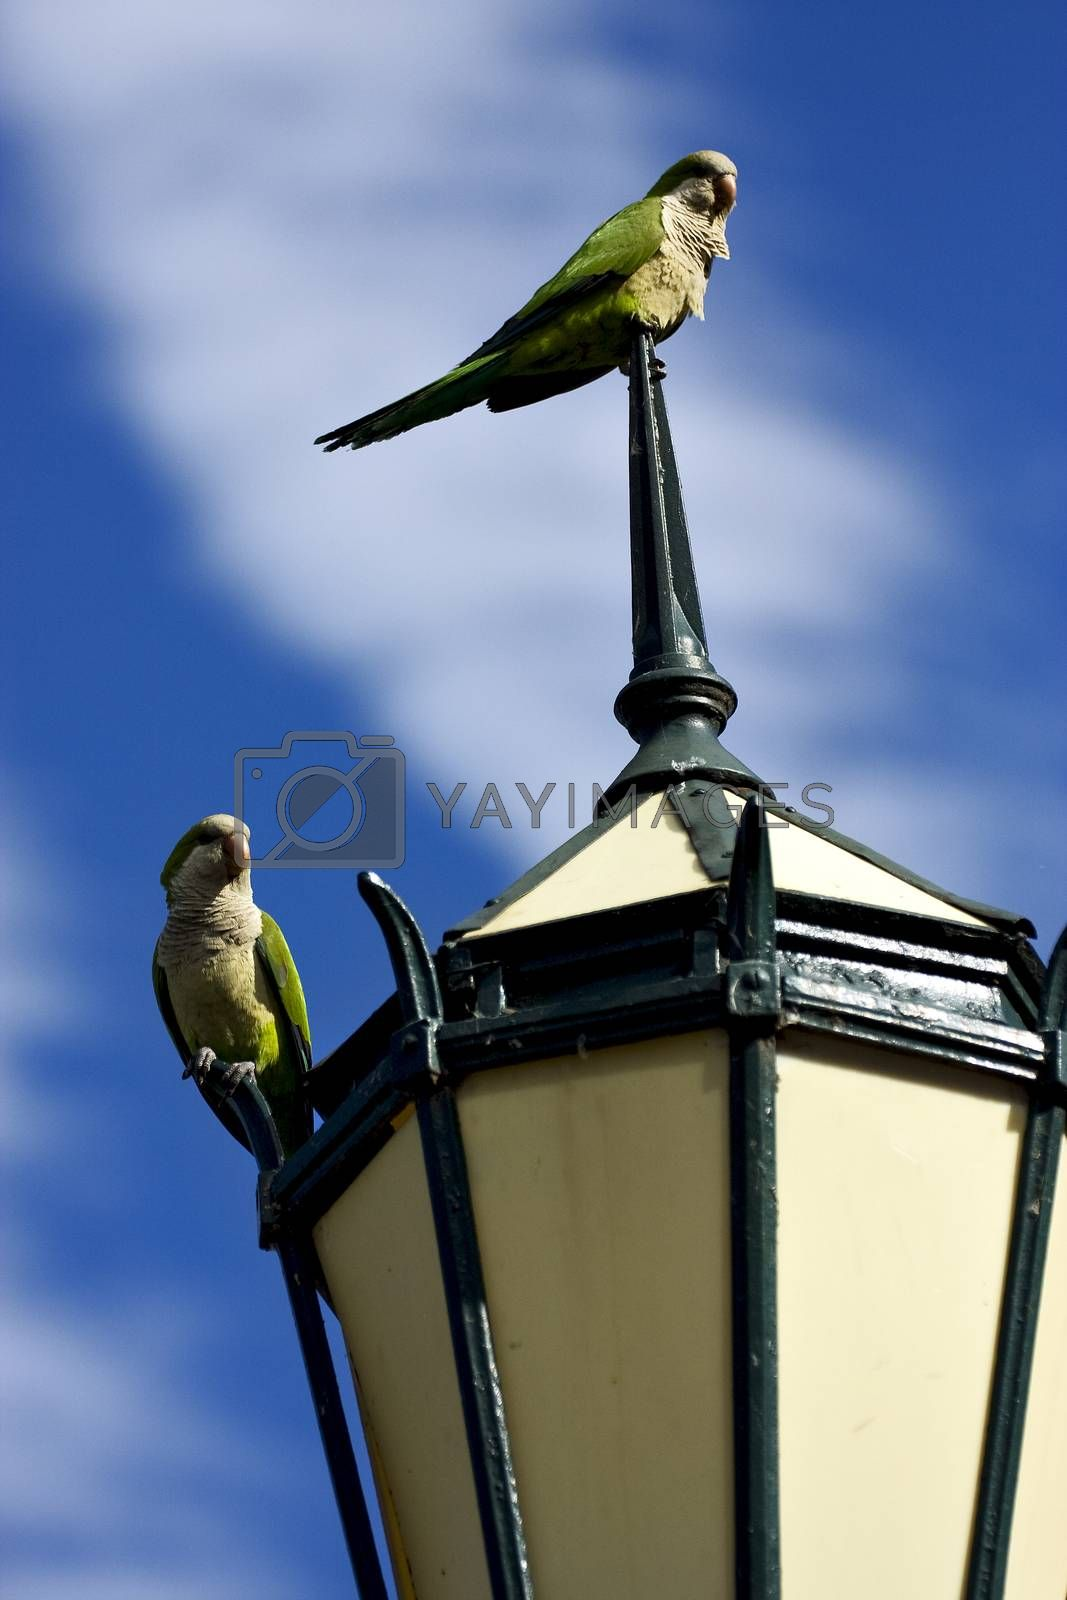 Royalty free image of  parrots  in  buenos aires  by lkpro